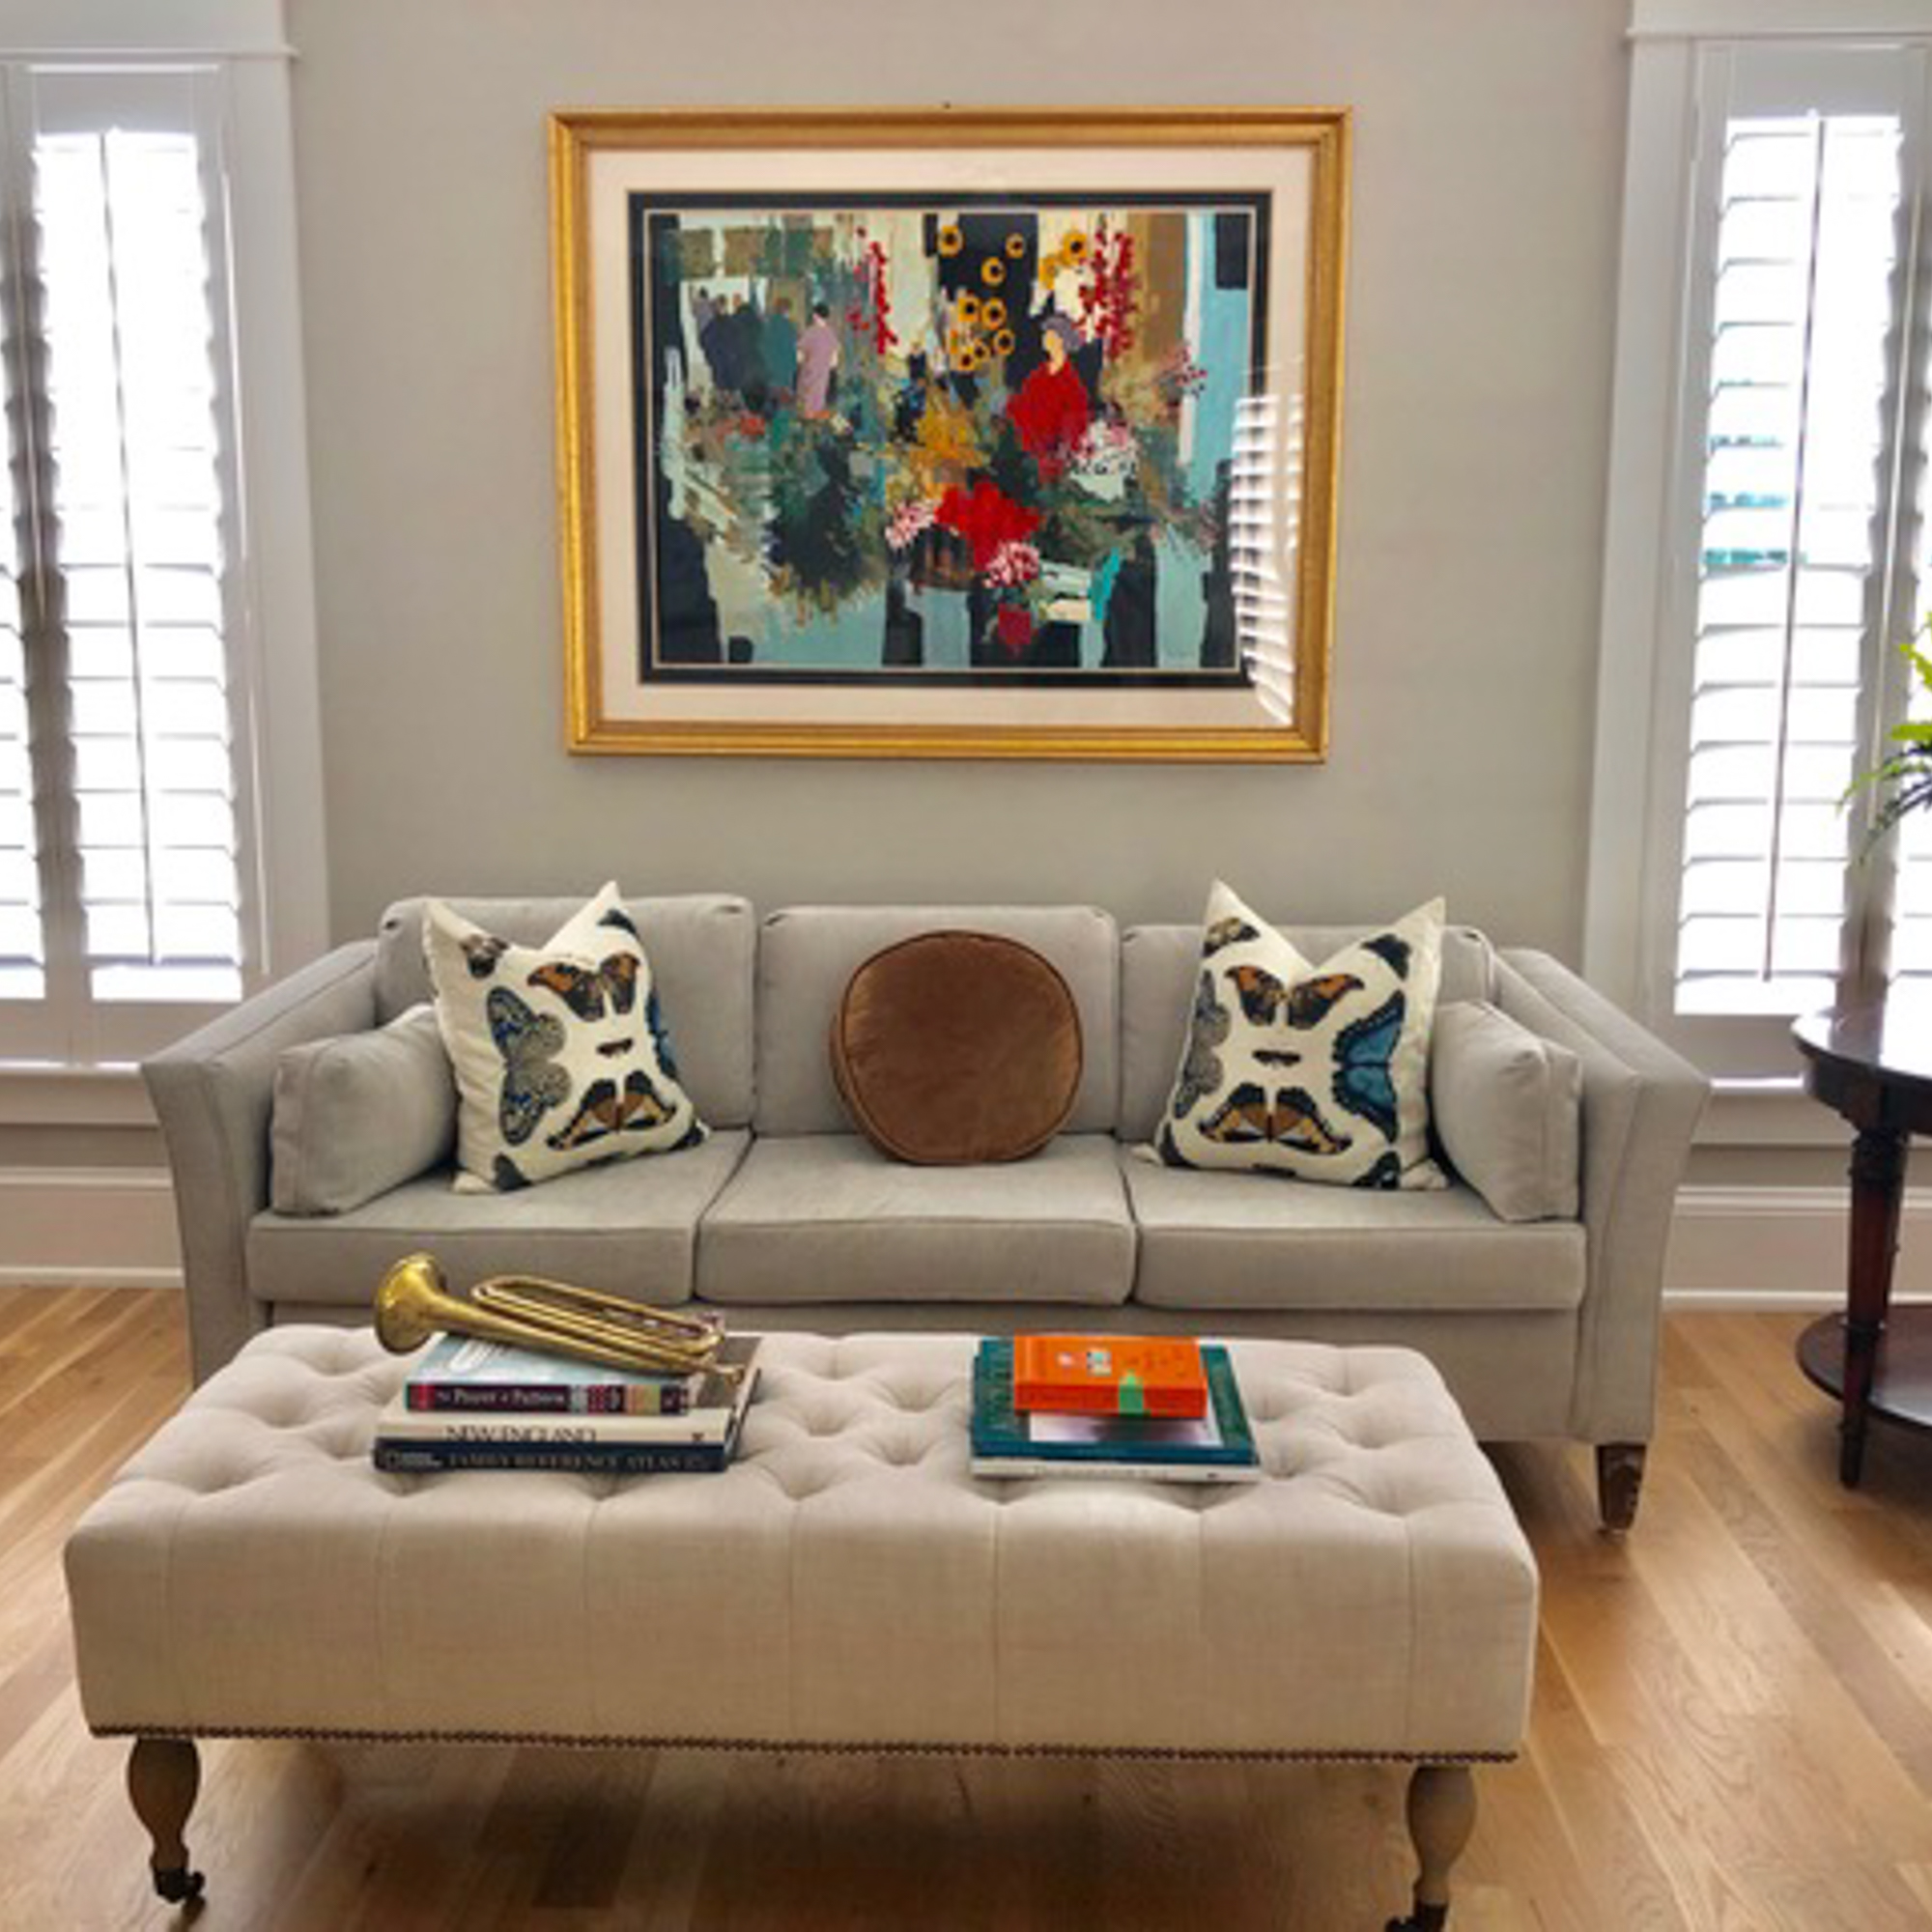 HOME STAGING - Coming in with a fresh eye, my goal is to create Lowcountry living at its finest, a longing lifestyle potential buyers dream of.